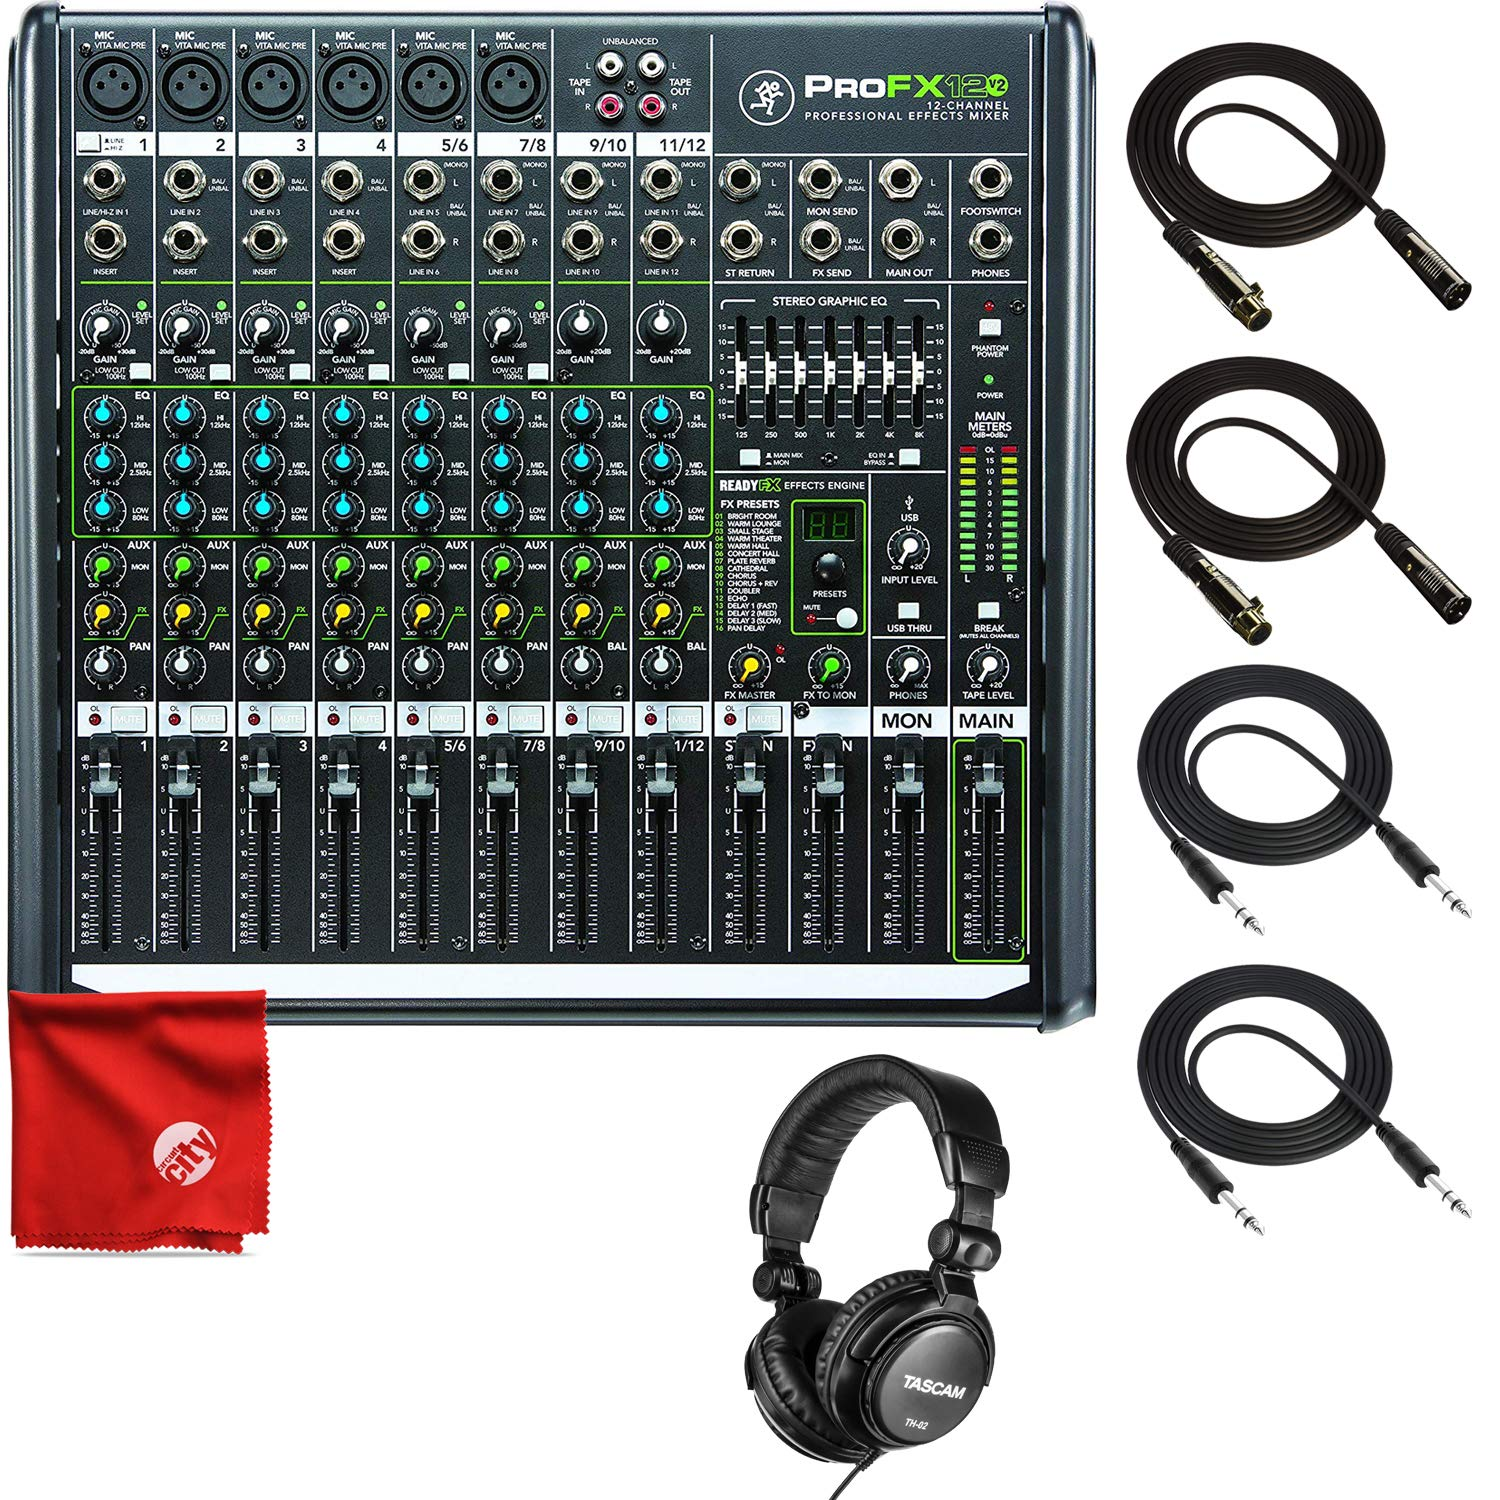 Mackie PROFX12V2 12-Channel Mixer with USB and Effects Bundle Including Tascam TH-01 Headphones + 2X TRS Cables + 2X XLR Cables + Microfiber Cleaning Cloth